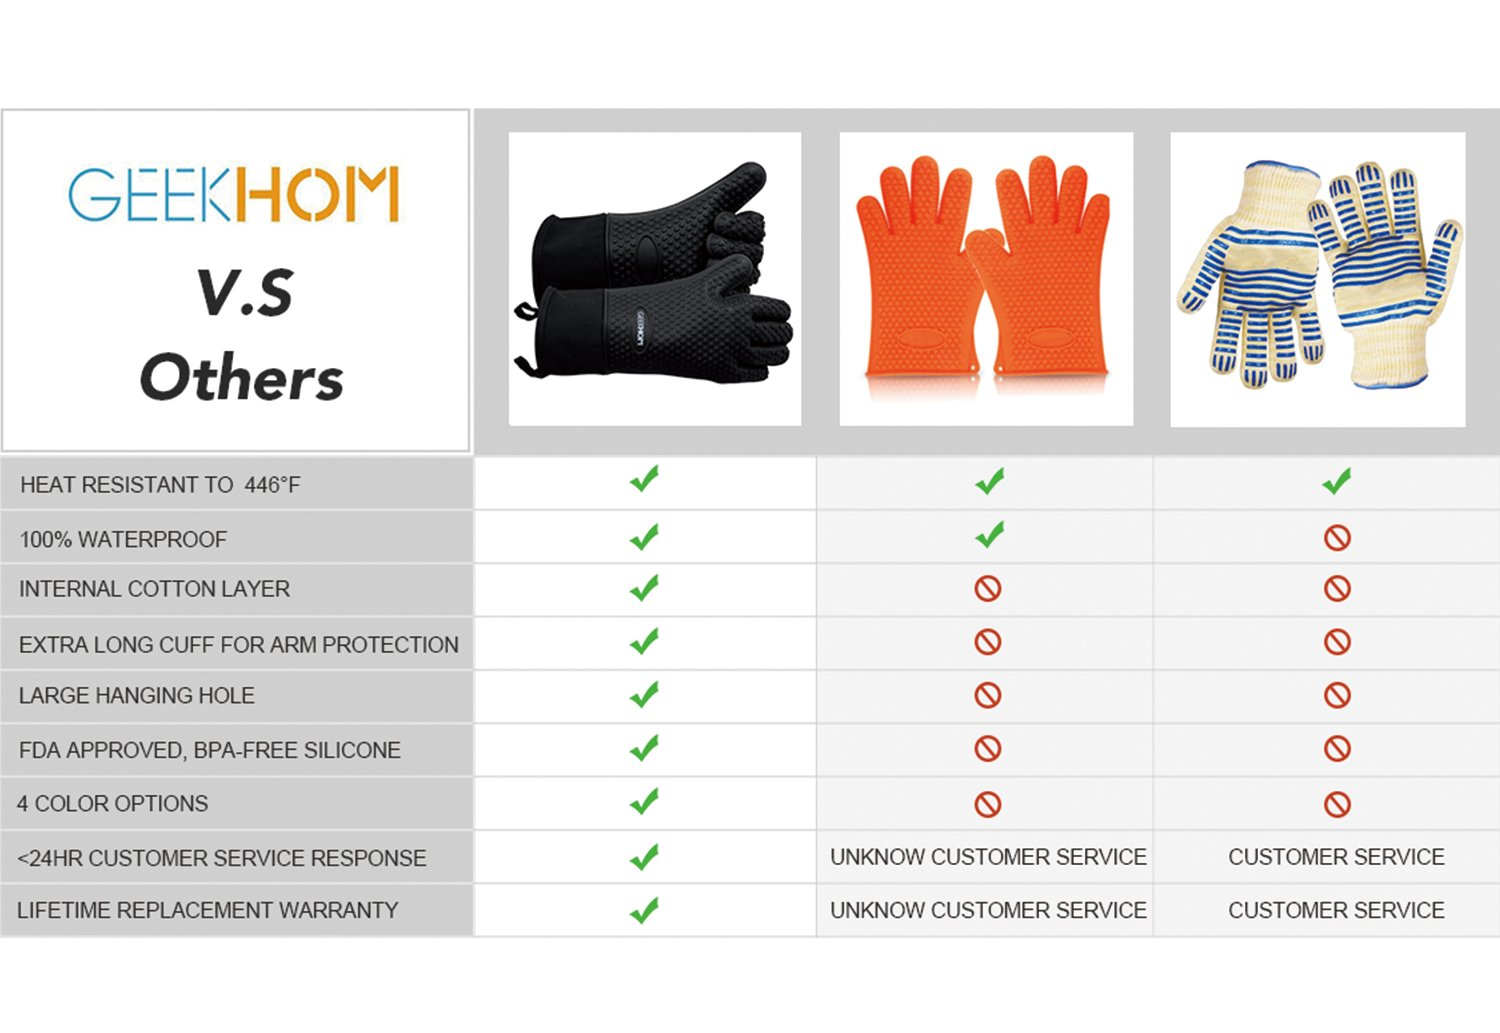 GEEKHOM Grilling Gloves, Heat Resistant Gloves BBQ Kitchen Silicone Oven Mitts, Long Waterproof Non-Slip Potholder for Barbecue, Cooking, Baking (Black) by GEEKHOM (Image #4)